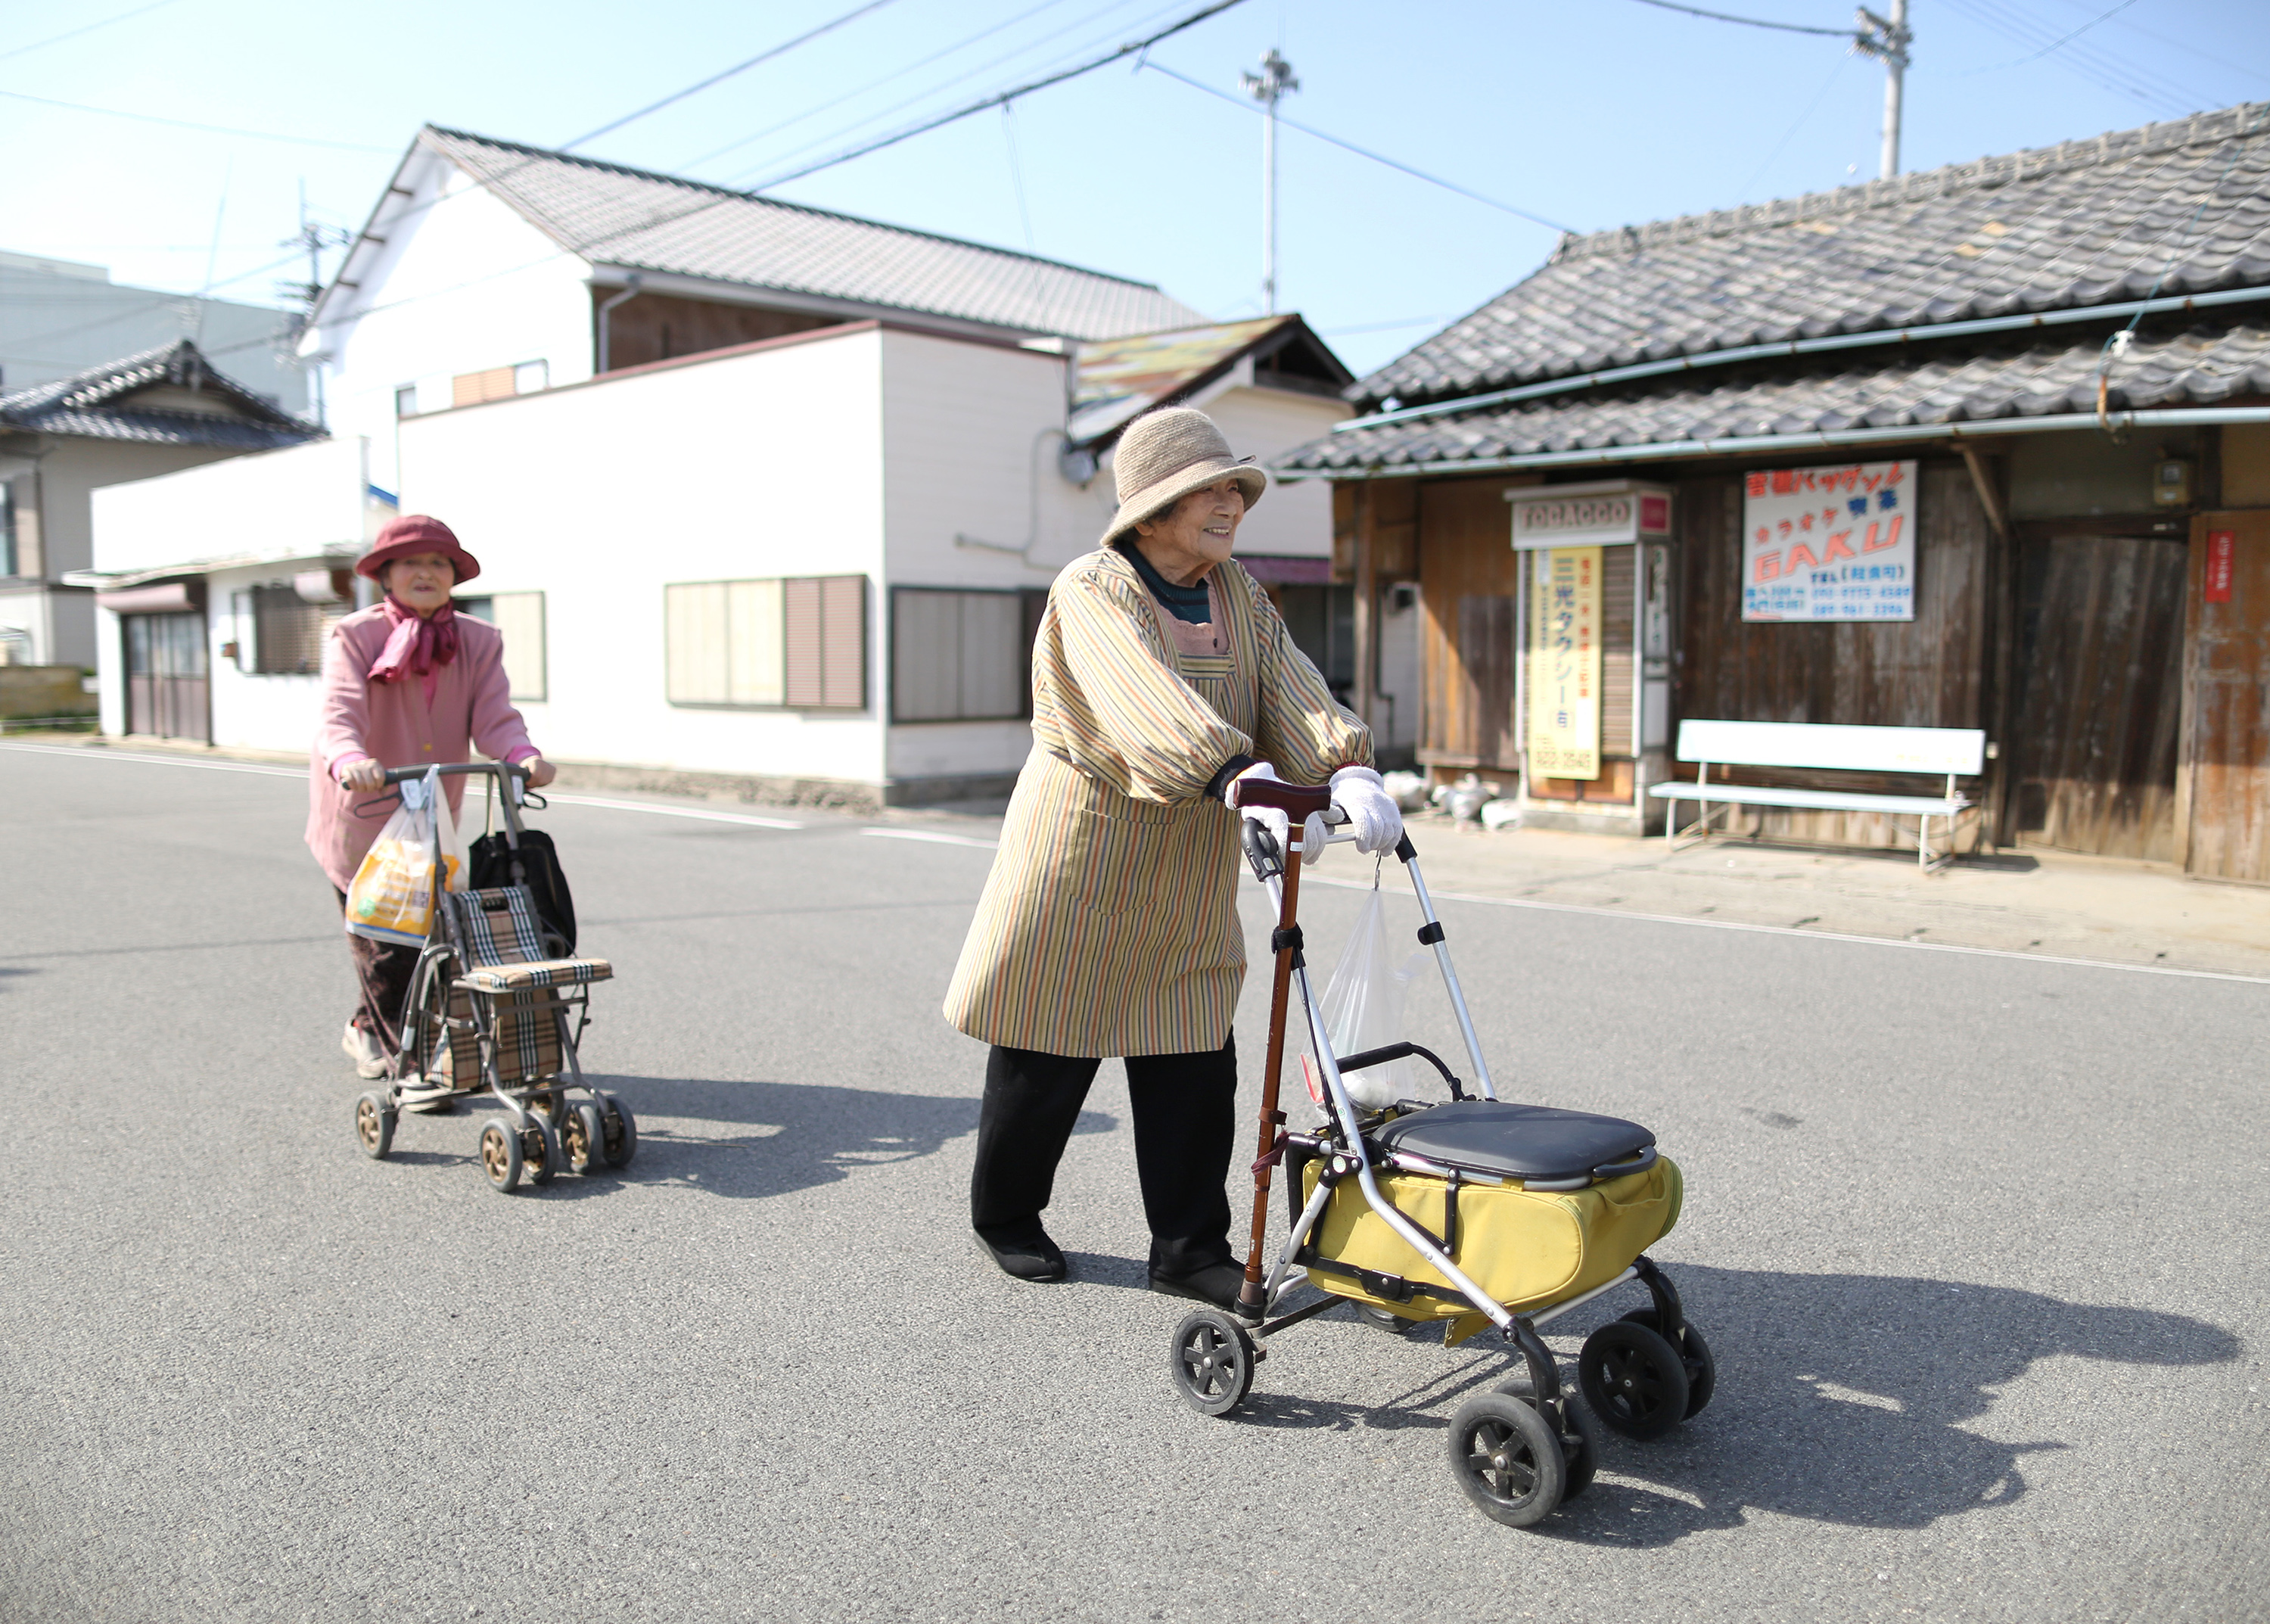 Images Of The Elderly In Rural Japan